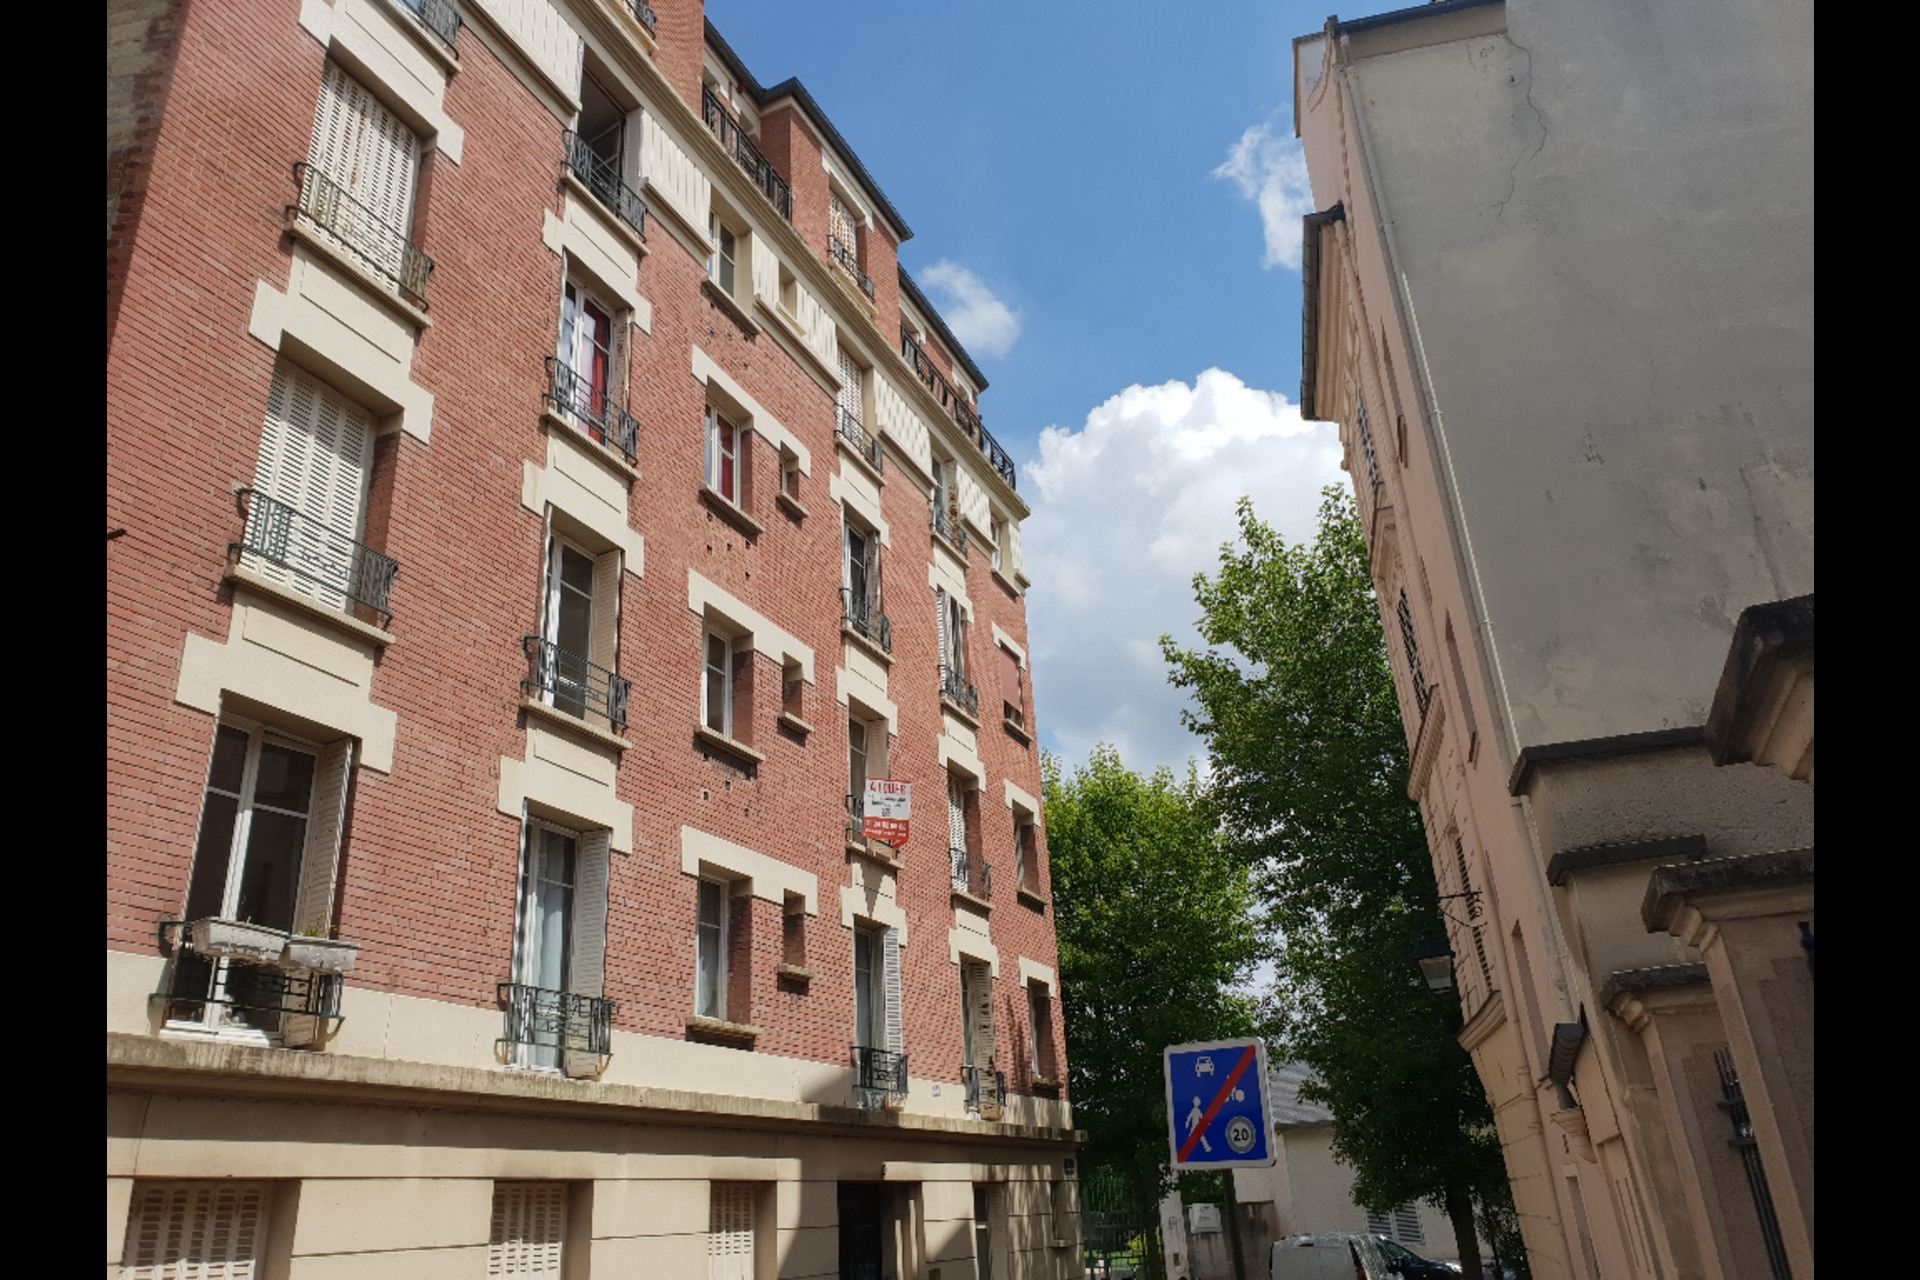 image 7 - Apartment For rent saint germain en laye - 2 rooms